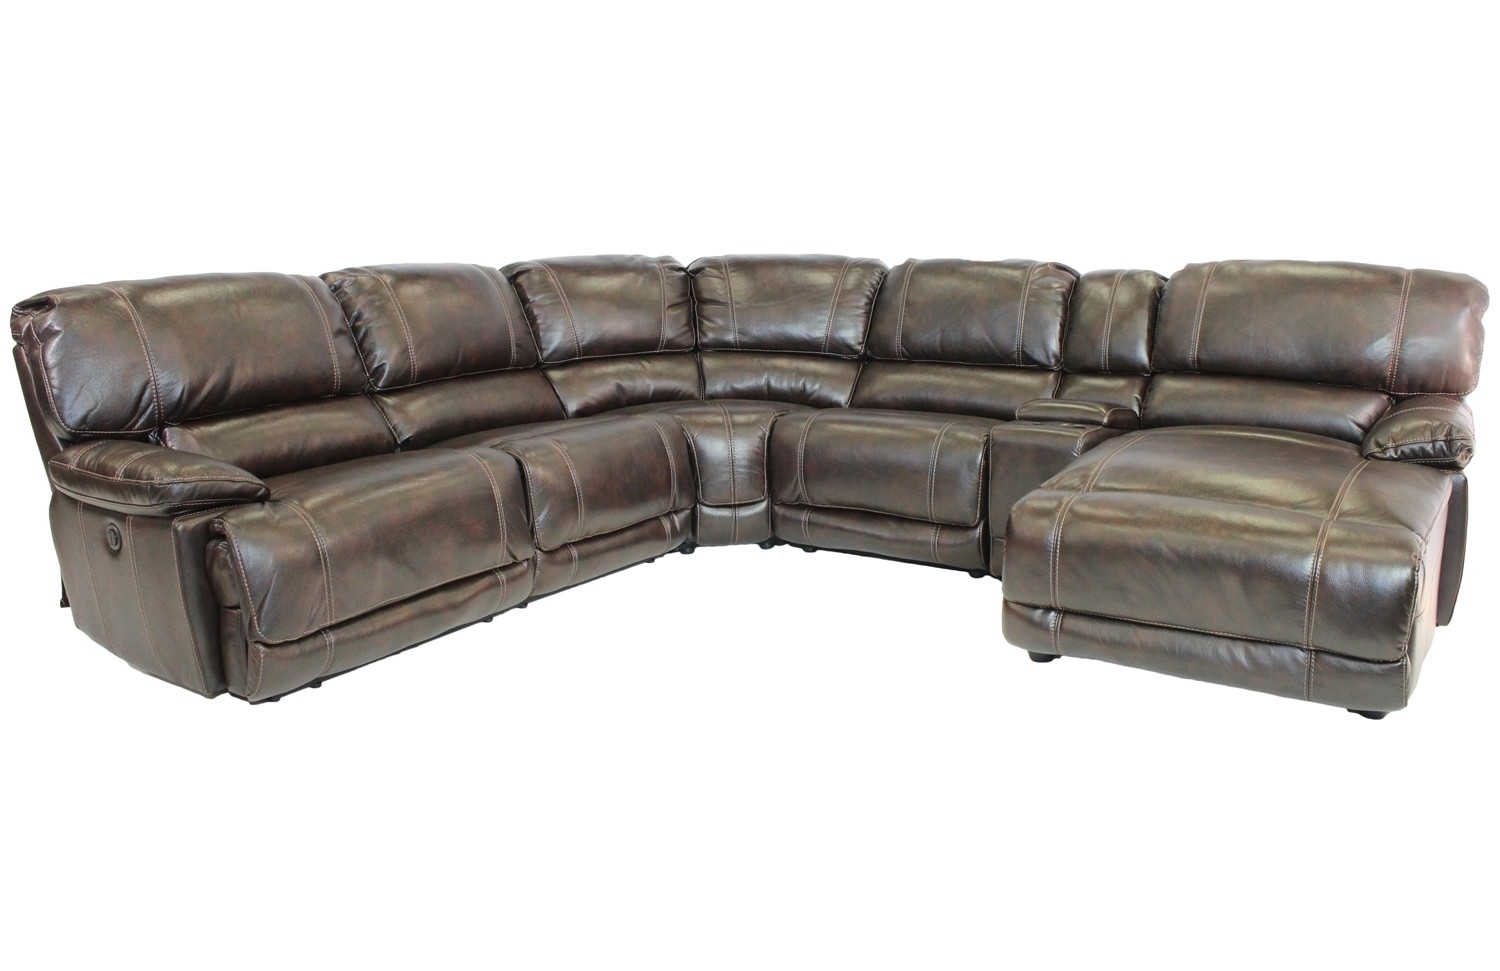 Sectional Sofas | Save Mor Online And In-Store regarding Aspen 2 Piece Sleeper Sectionals With Laf Chaise (Image 25 of 30)